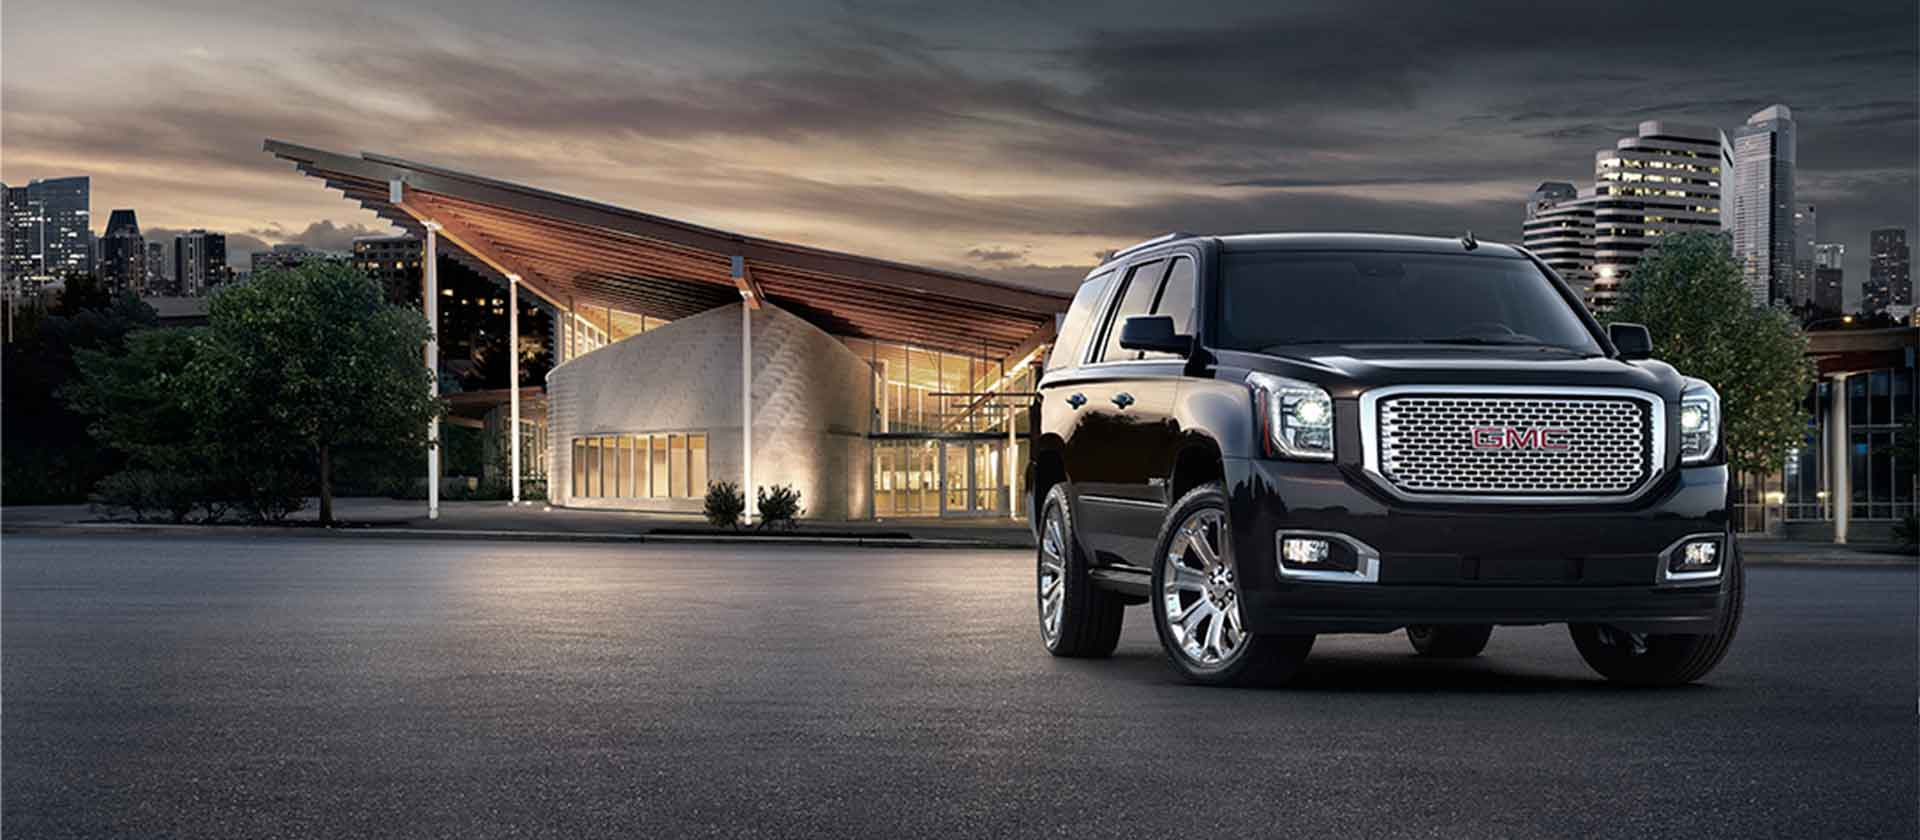 1920x840 - GMC Wallpapers 3